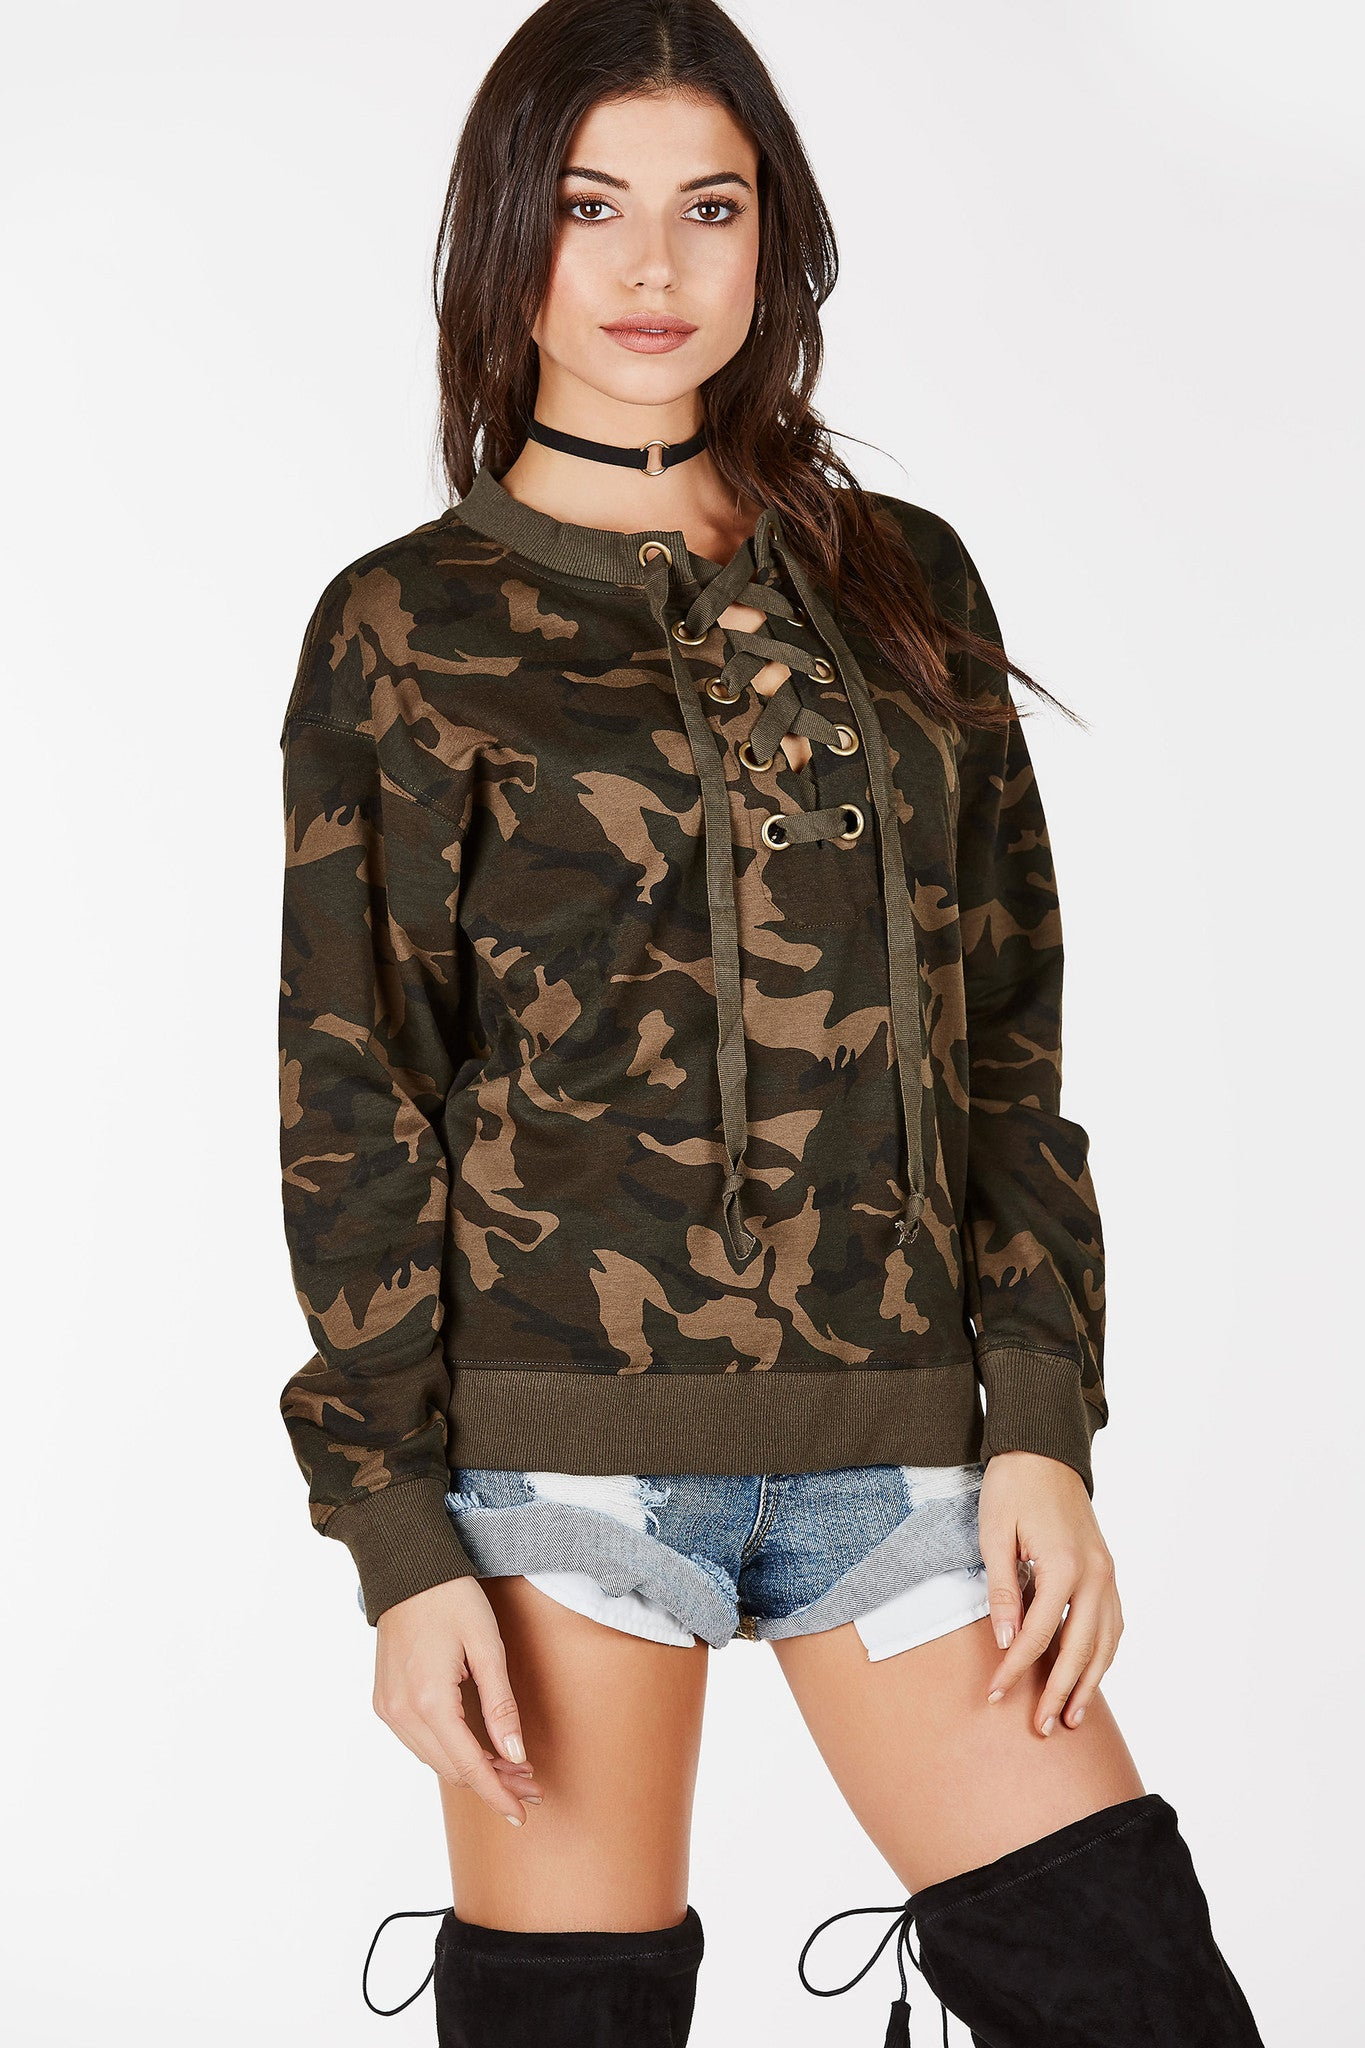 Camo print sweater with lace up front. Pair with jeans or leggings for a comfy, casual look.